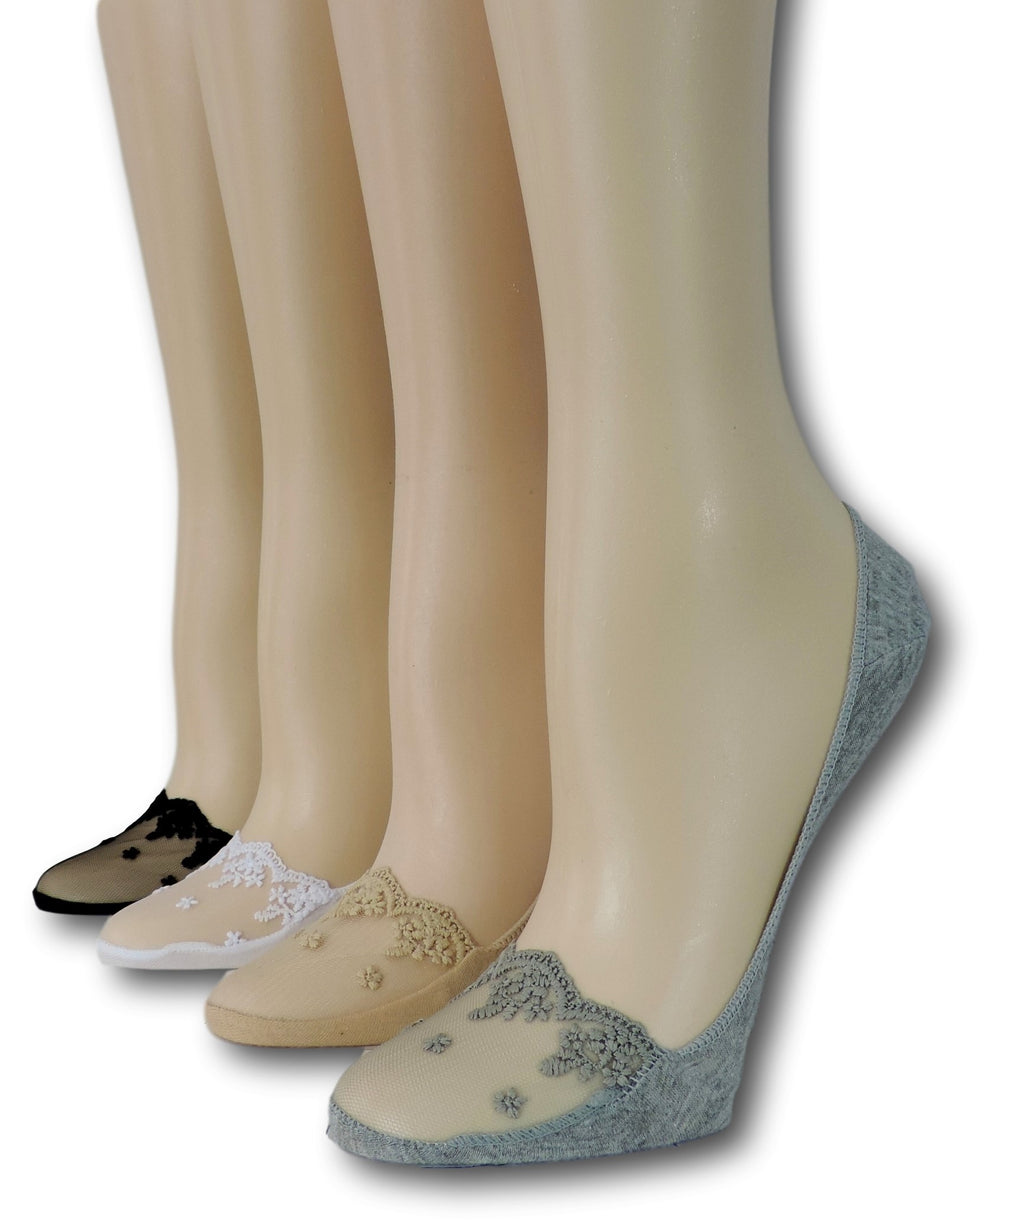 Fancy No Show Sheer Socks (Pack of 4 Pairs)